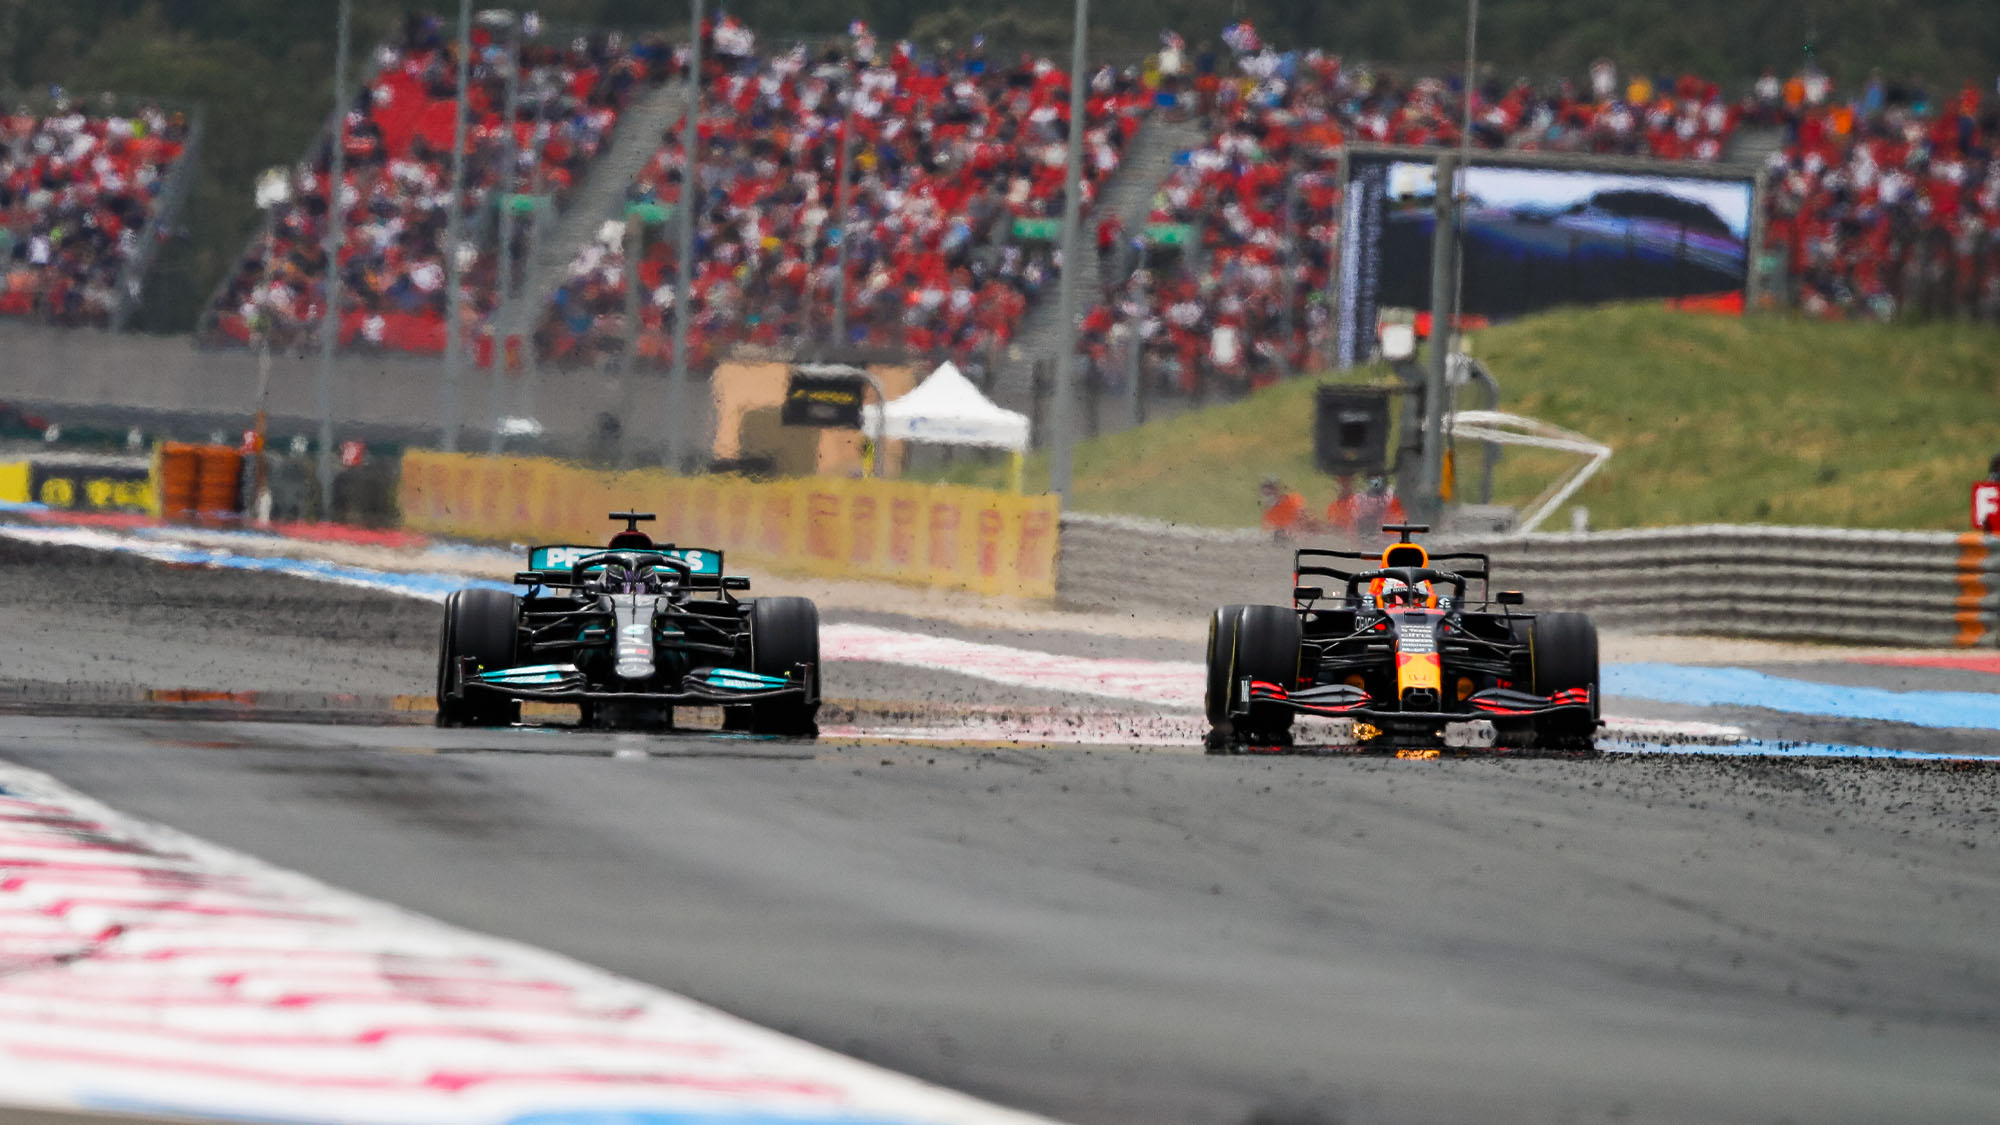 Max Verstappen passes Lewis Hamilton in the 2021 French Grand Prix